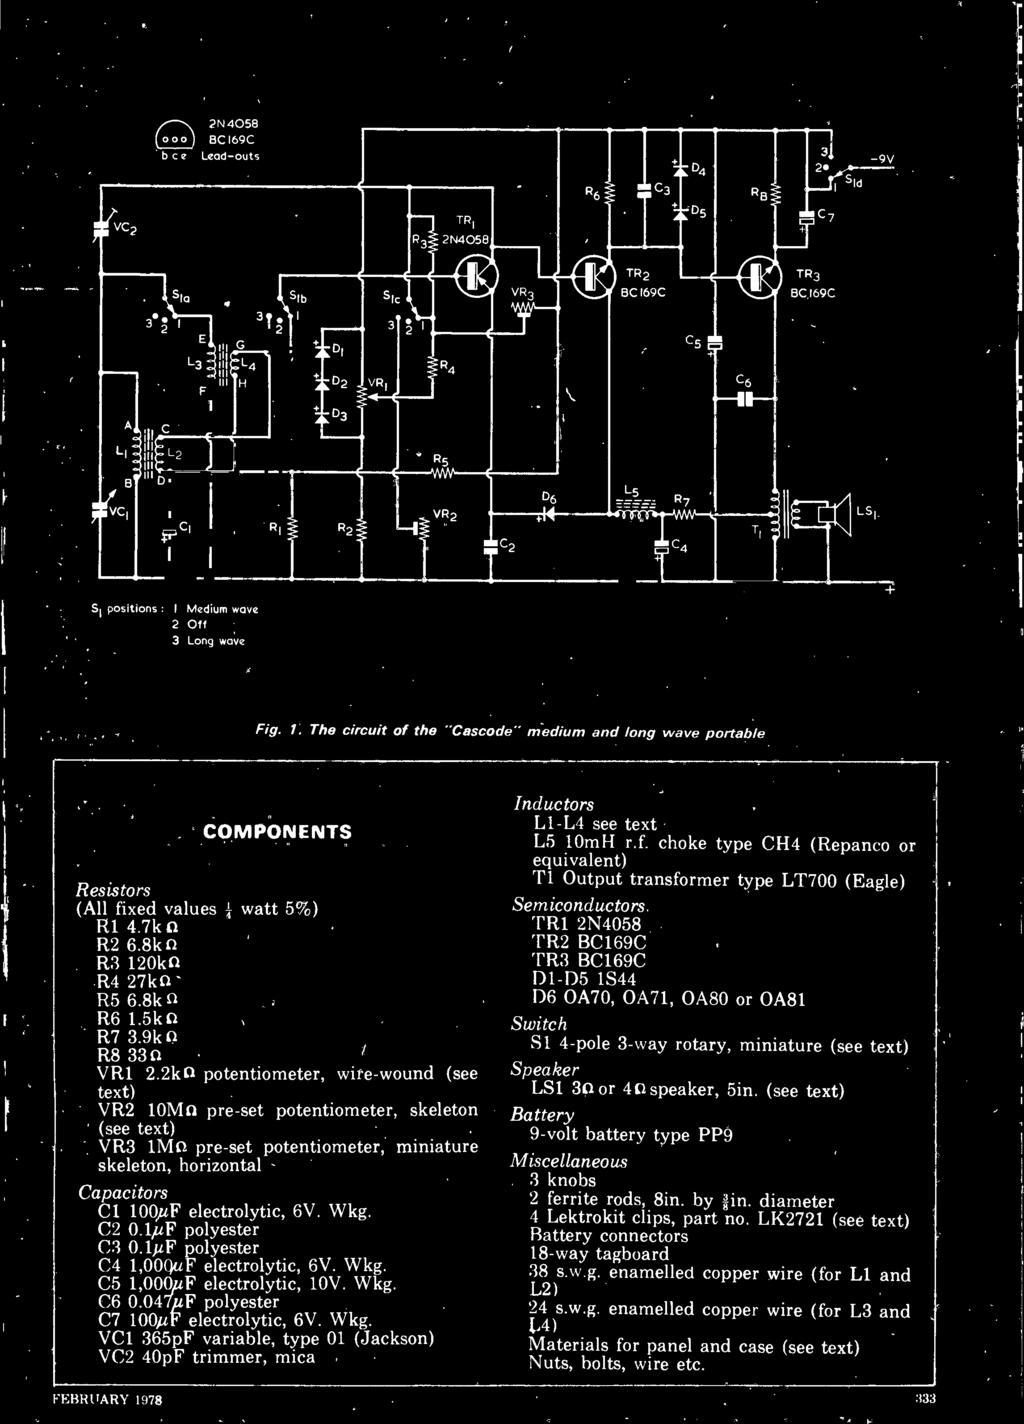 Mediumlong Wave Portable The Casc Also Featured Electronic Di Igh Music View Topic Vco 555 As Well On Thomas Henry Schematic C2 01 Uf Polyester C3 01f C4 1ooquf Electrolytic 6v